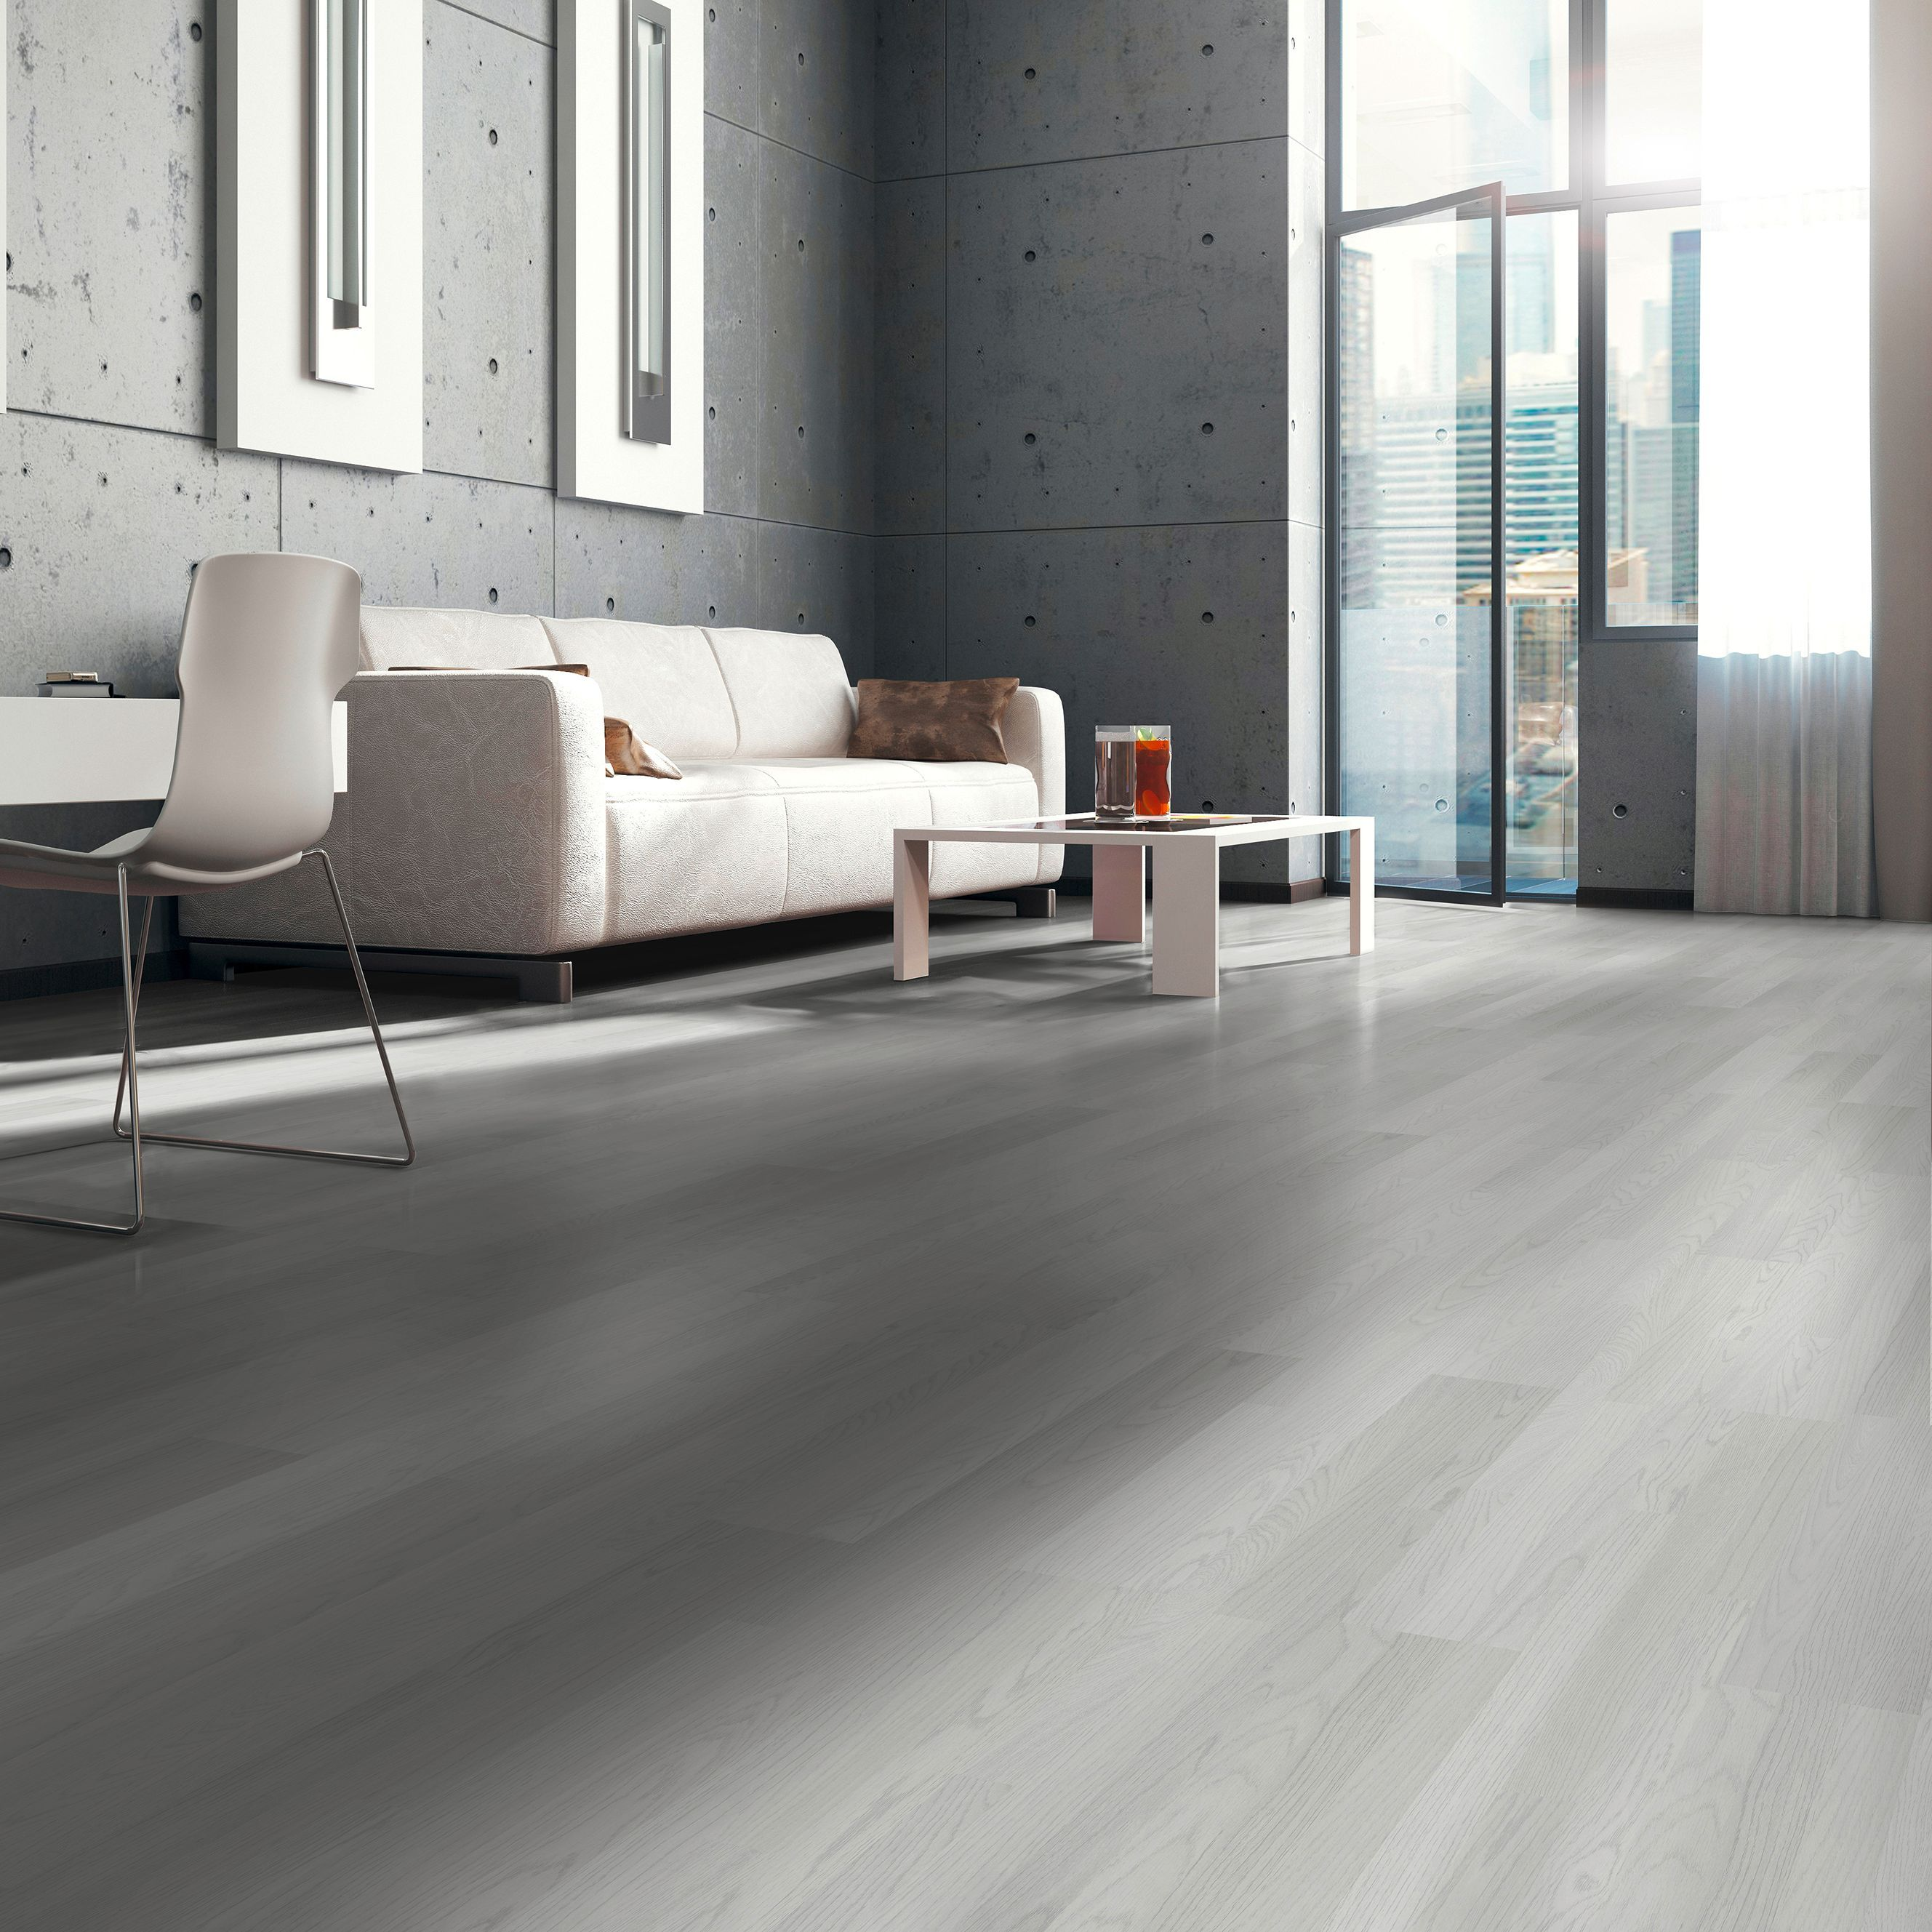 Whitewash Oak White Wood Effect Laminate Flooring 3 M Pack